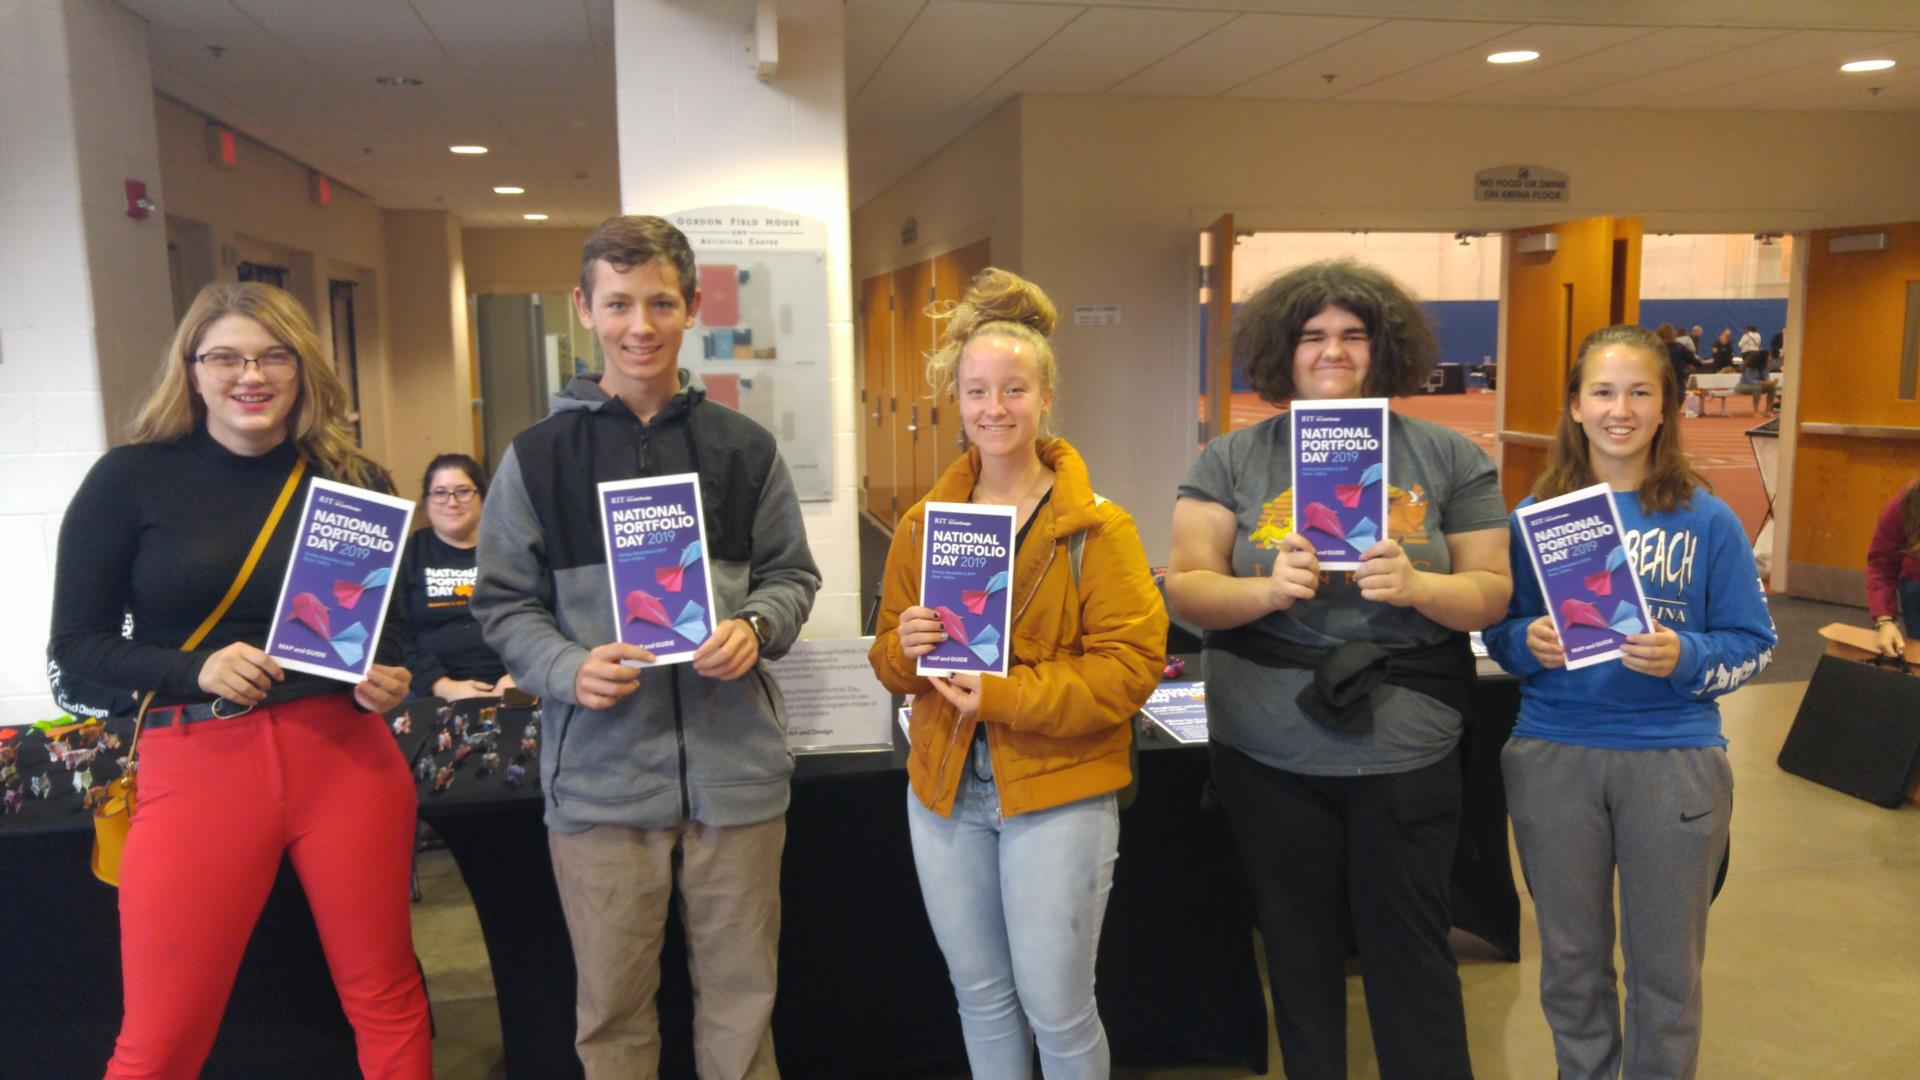 Fivie students hold up fliers for National Portfolio Day